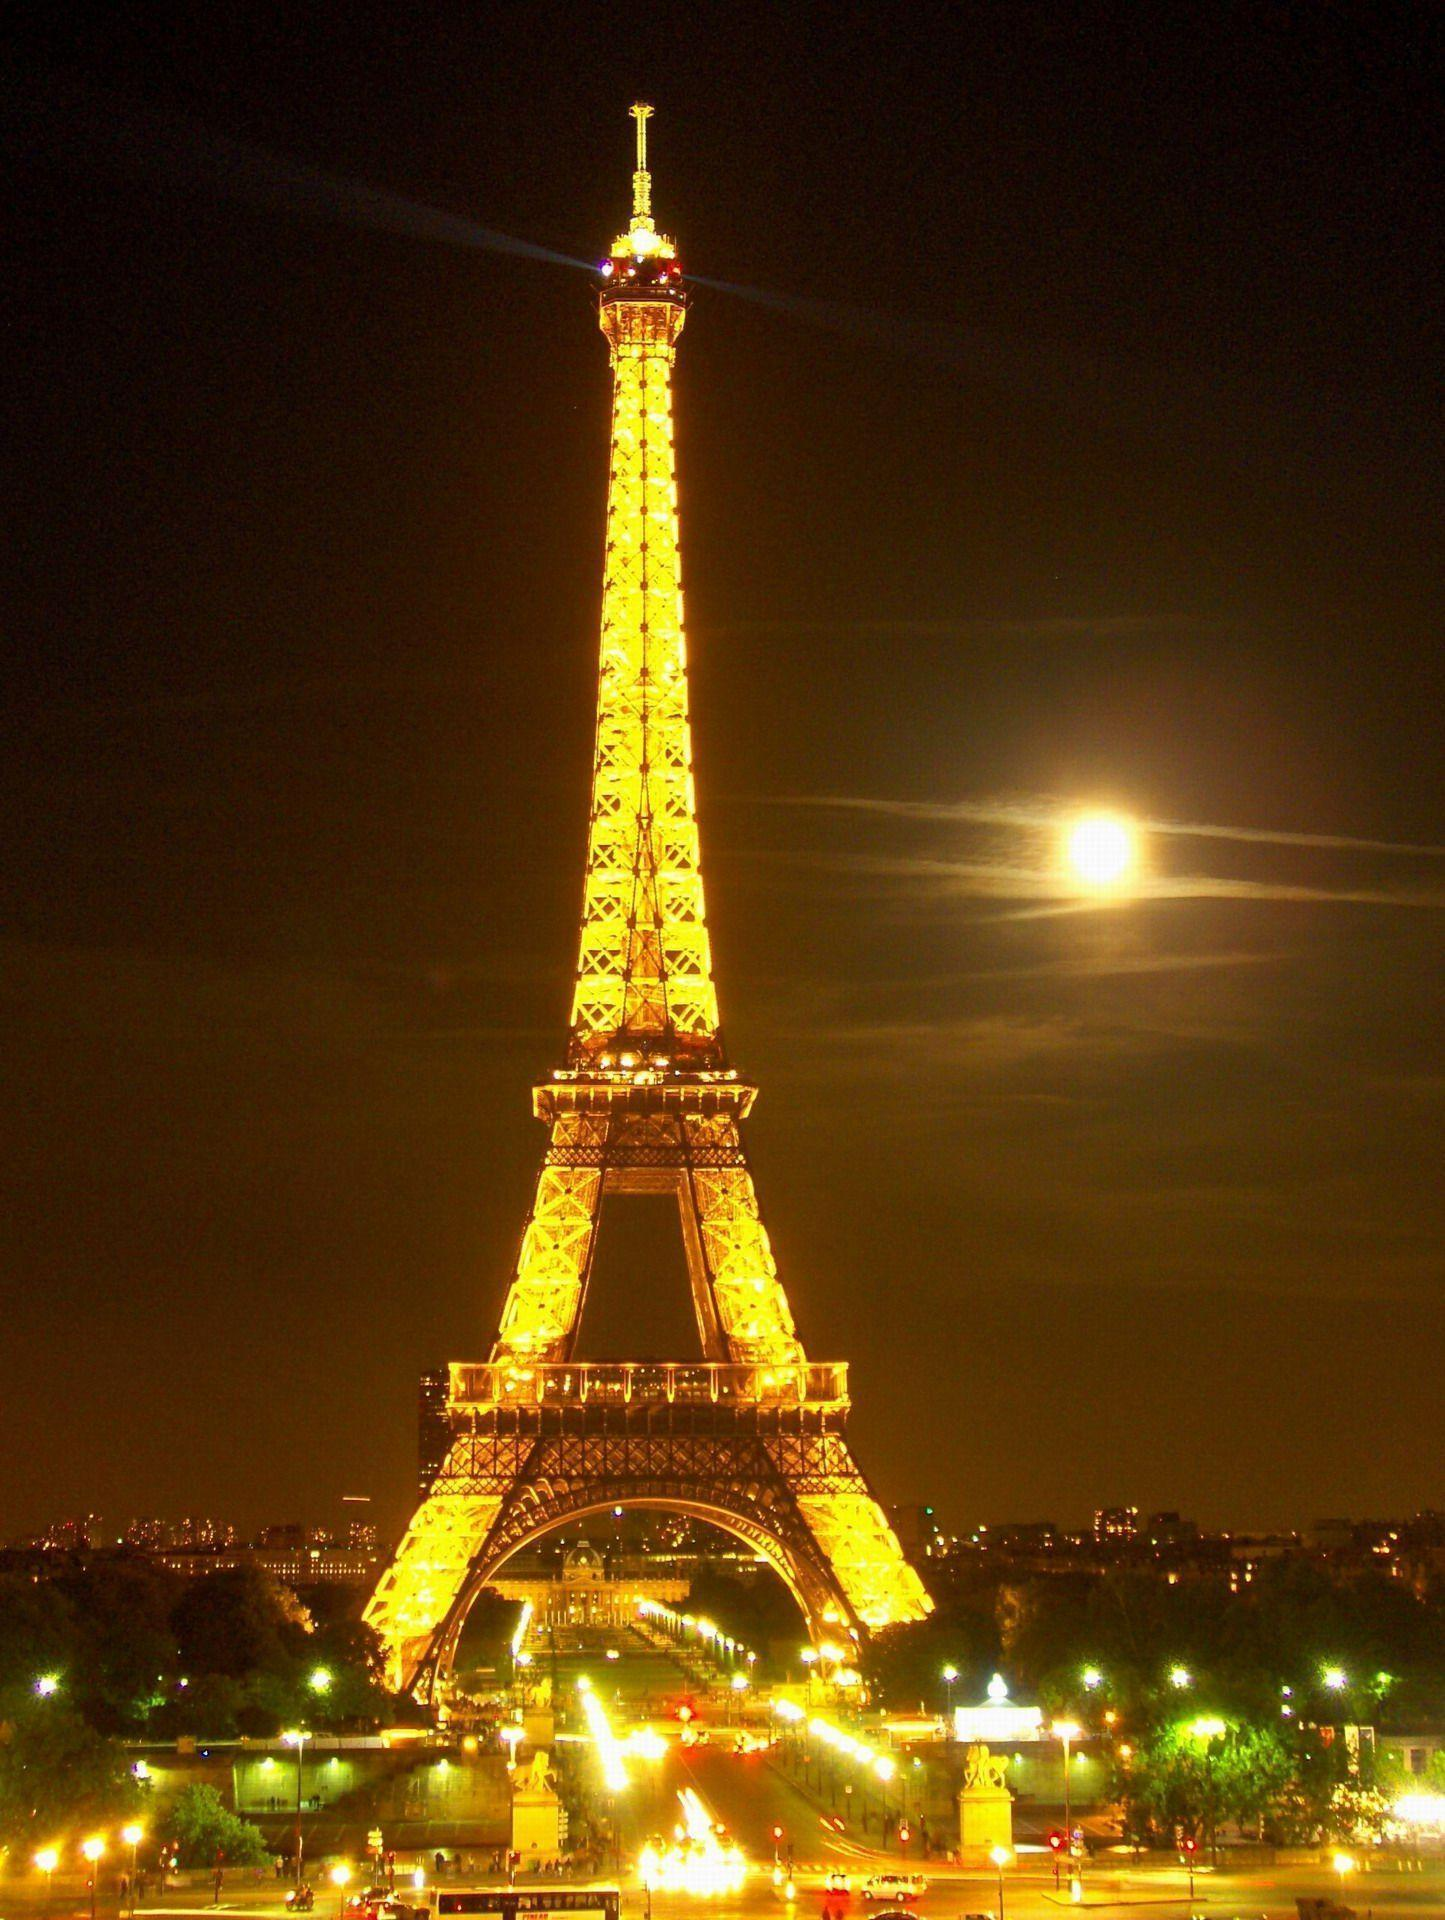 Hd wallpaper eiffel tower - The Eiffel Tower In A Moonlit Night France Hd Travel Photos And